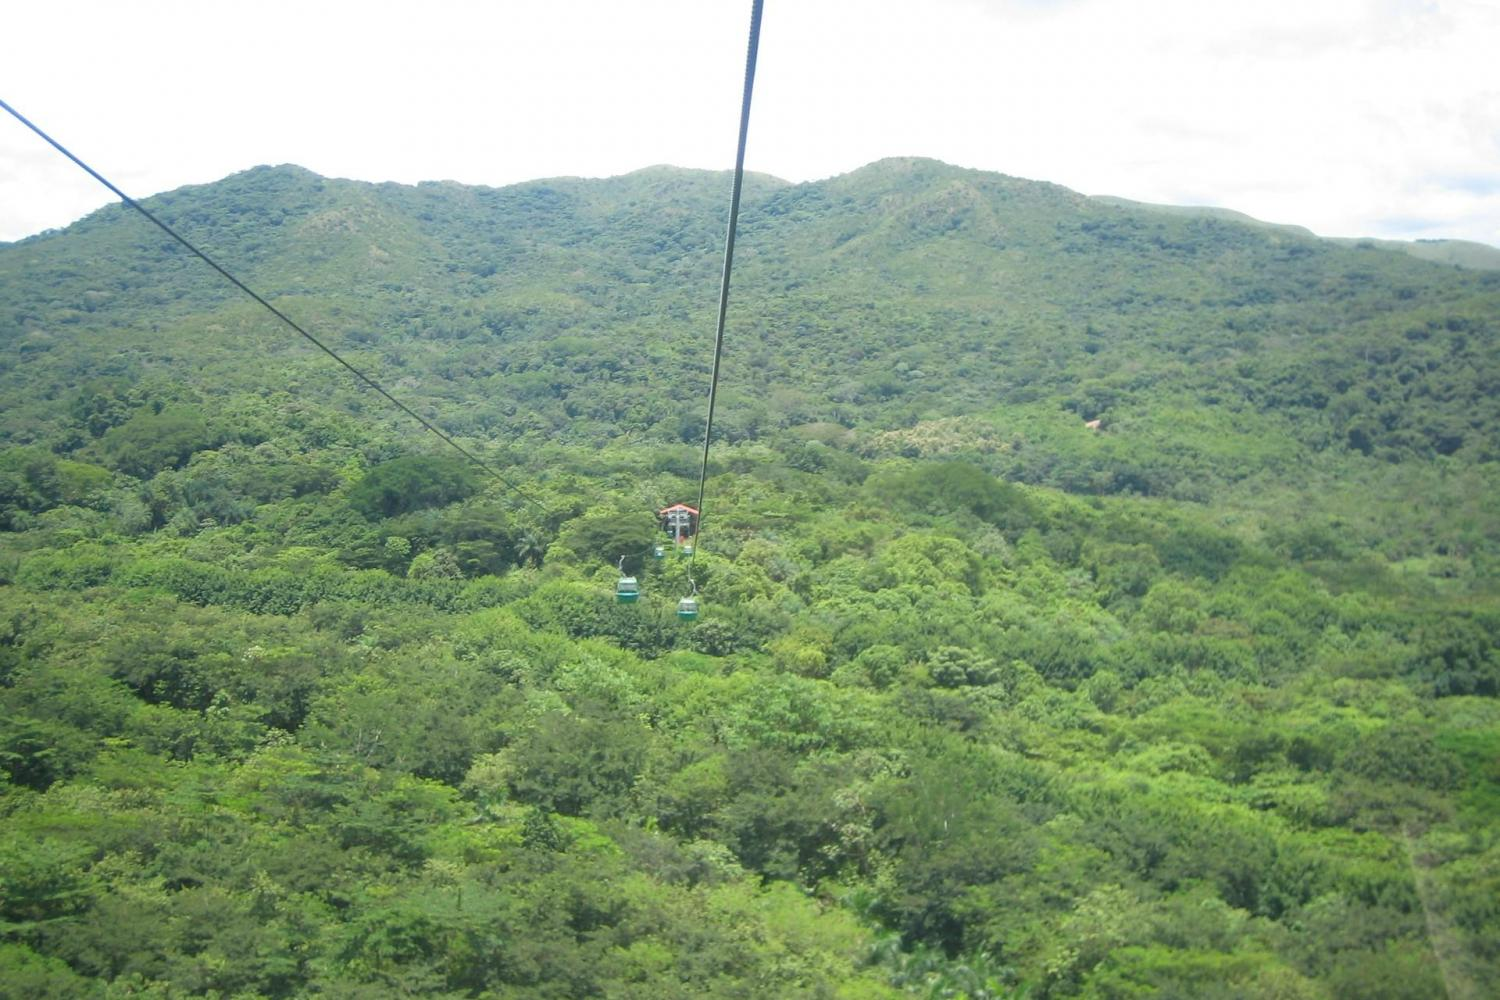 Soar over the jungle of Costa Rica for incredible views